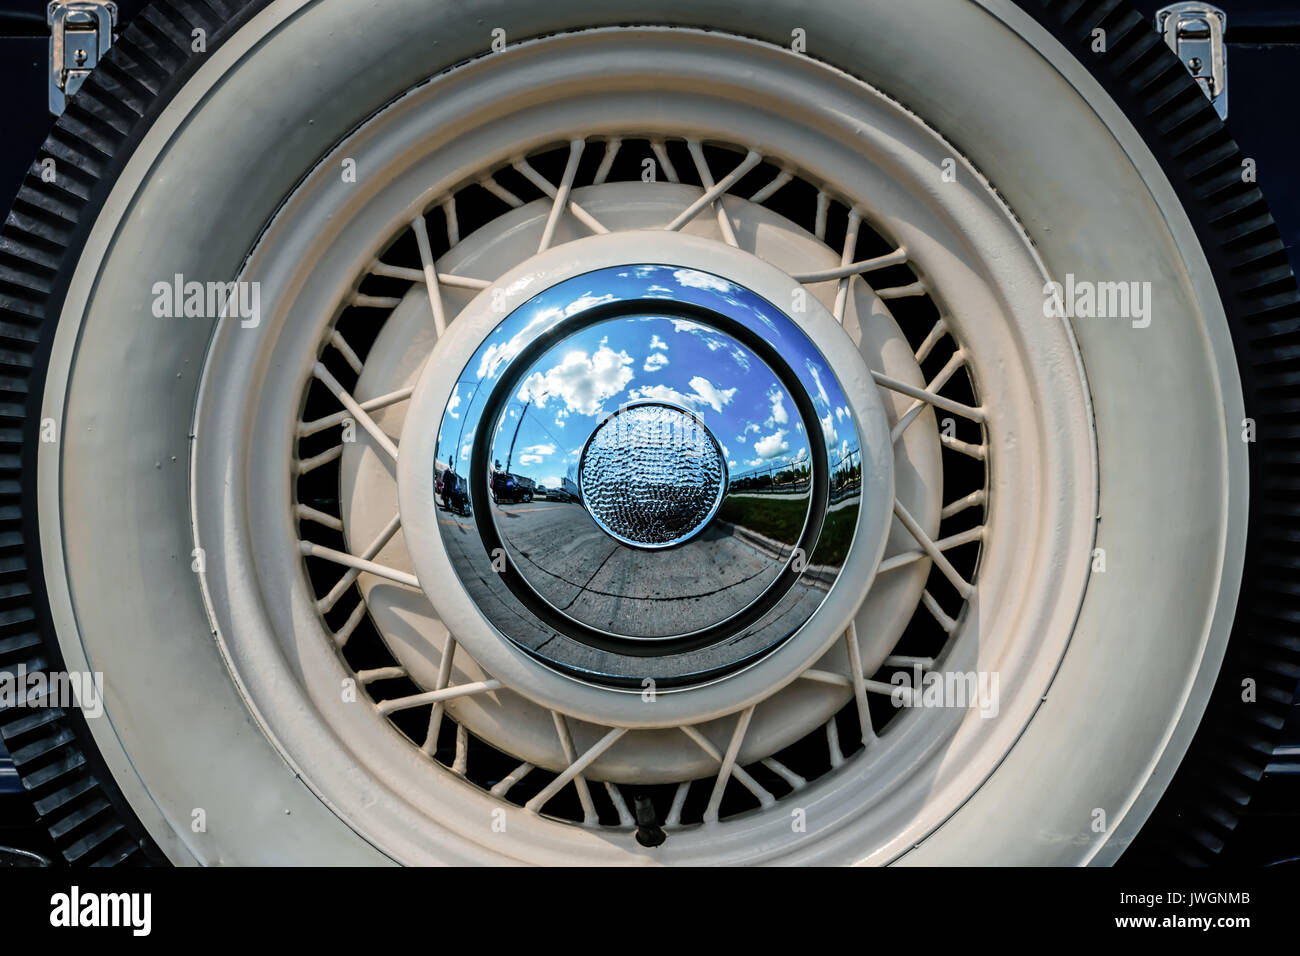 The spare tire on the back of a 1934 classic American car found in Wisconsin. - Stock Image